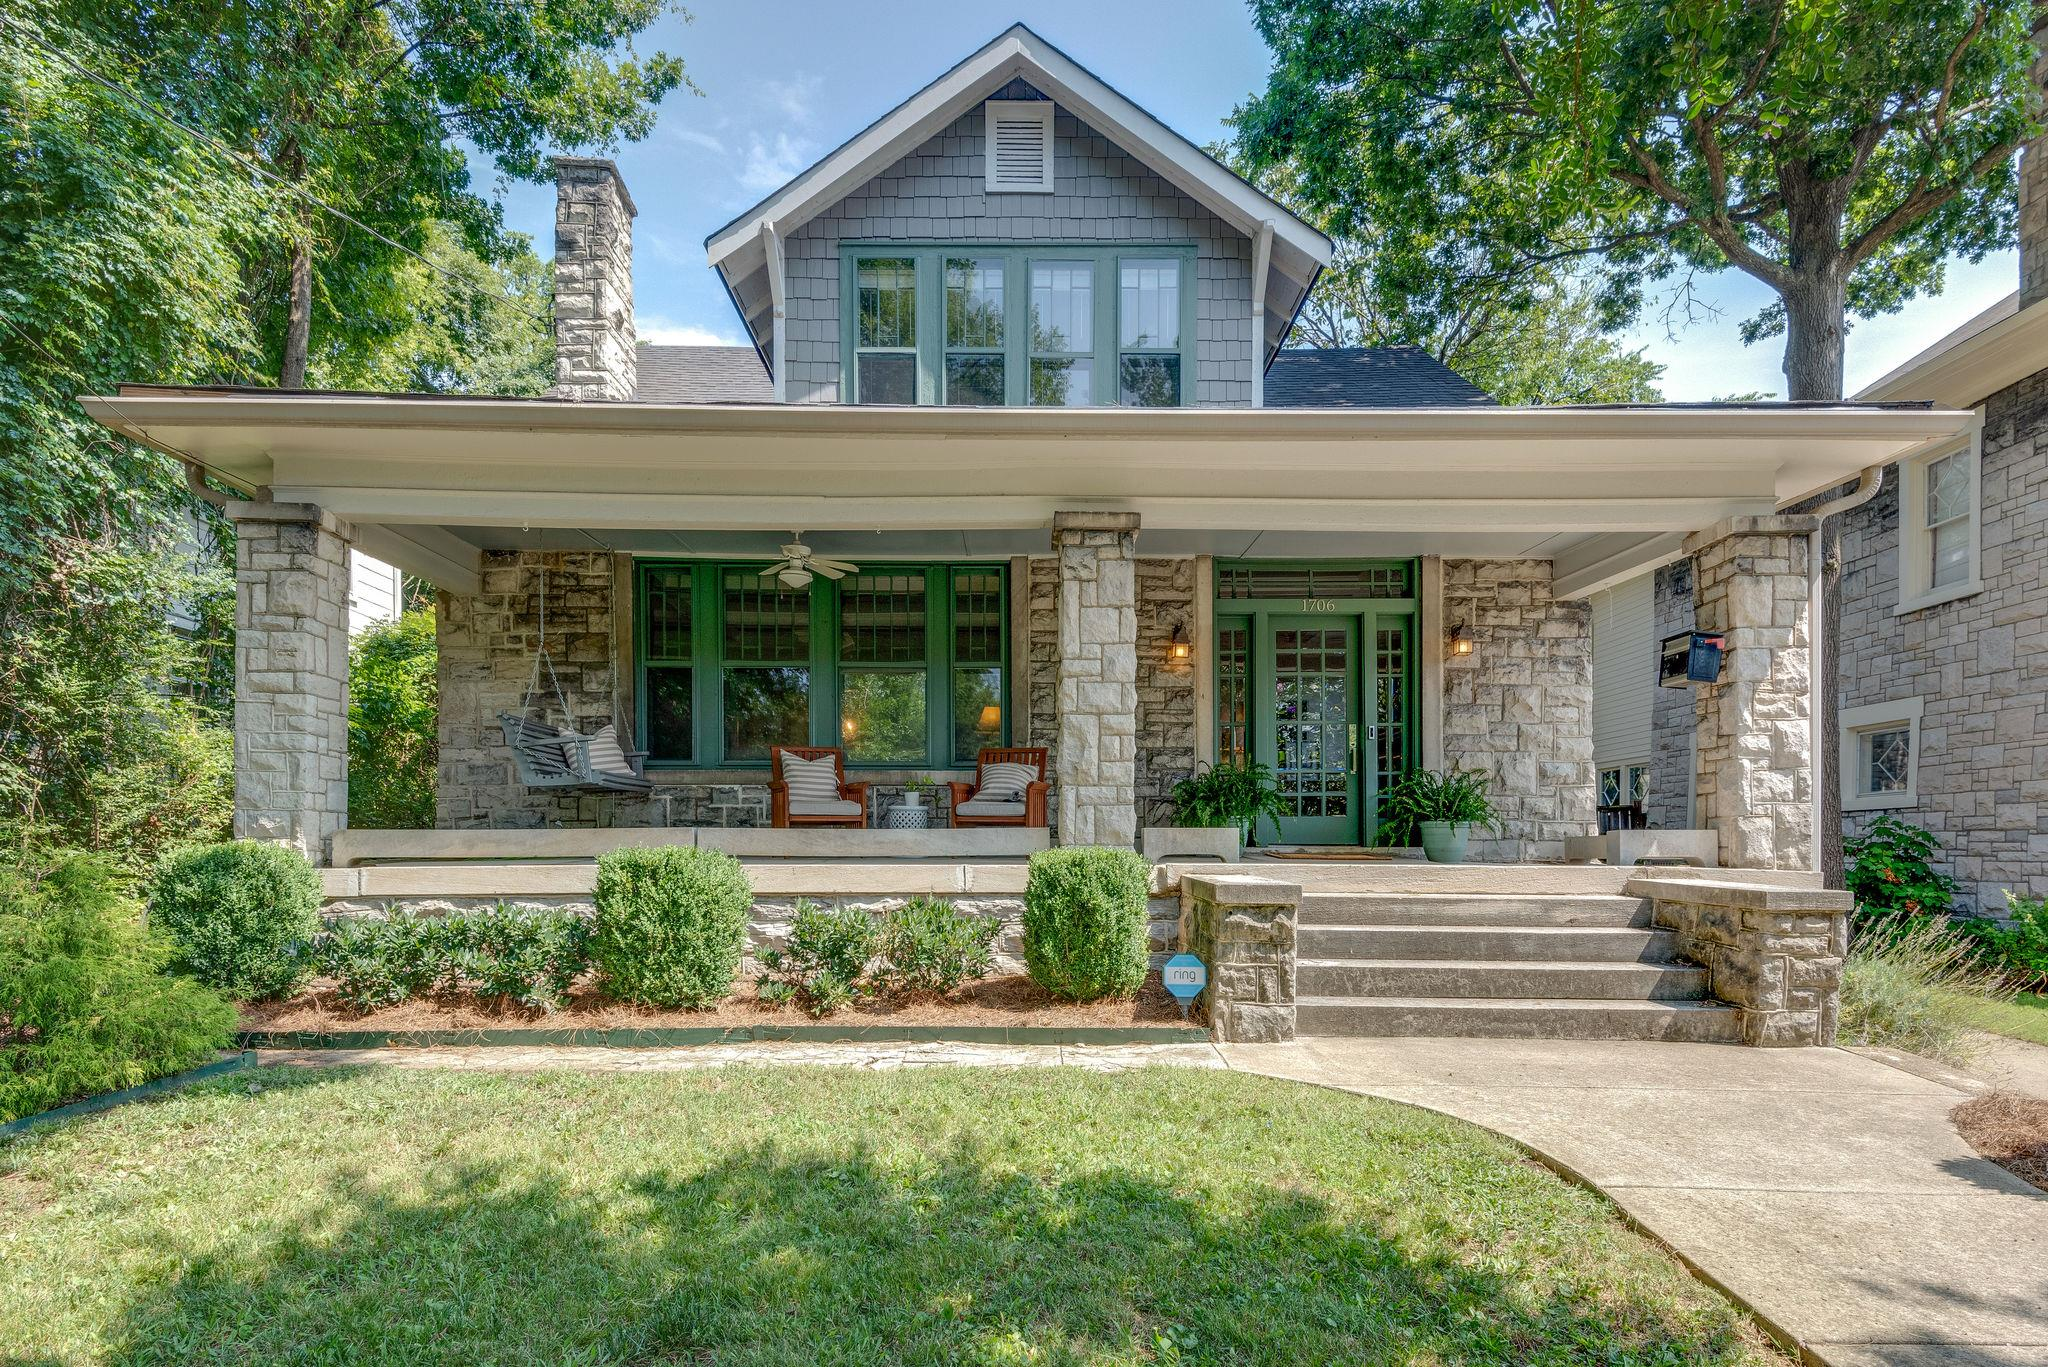 1706 Sweetbriar Ave, Nashville, TN 37212 - Nashville, TN real estate listing